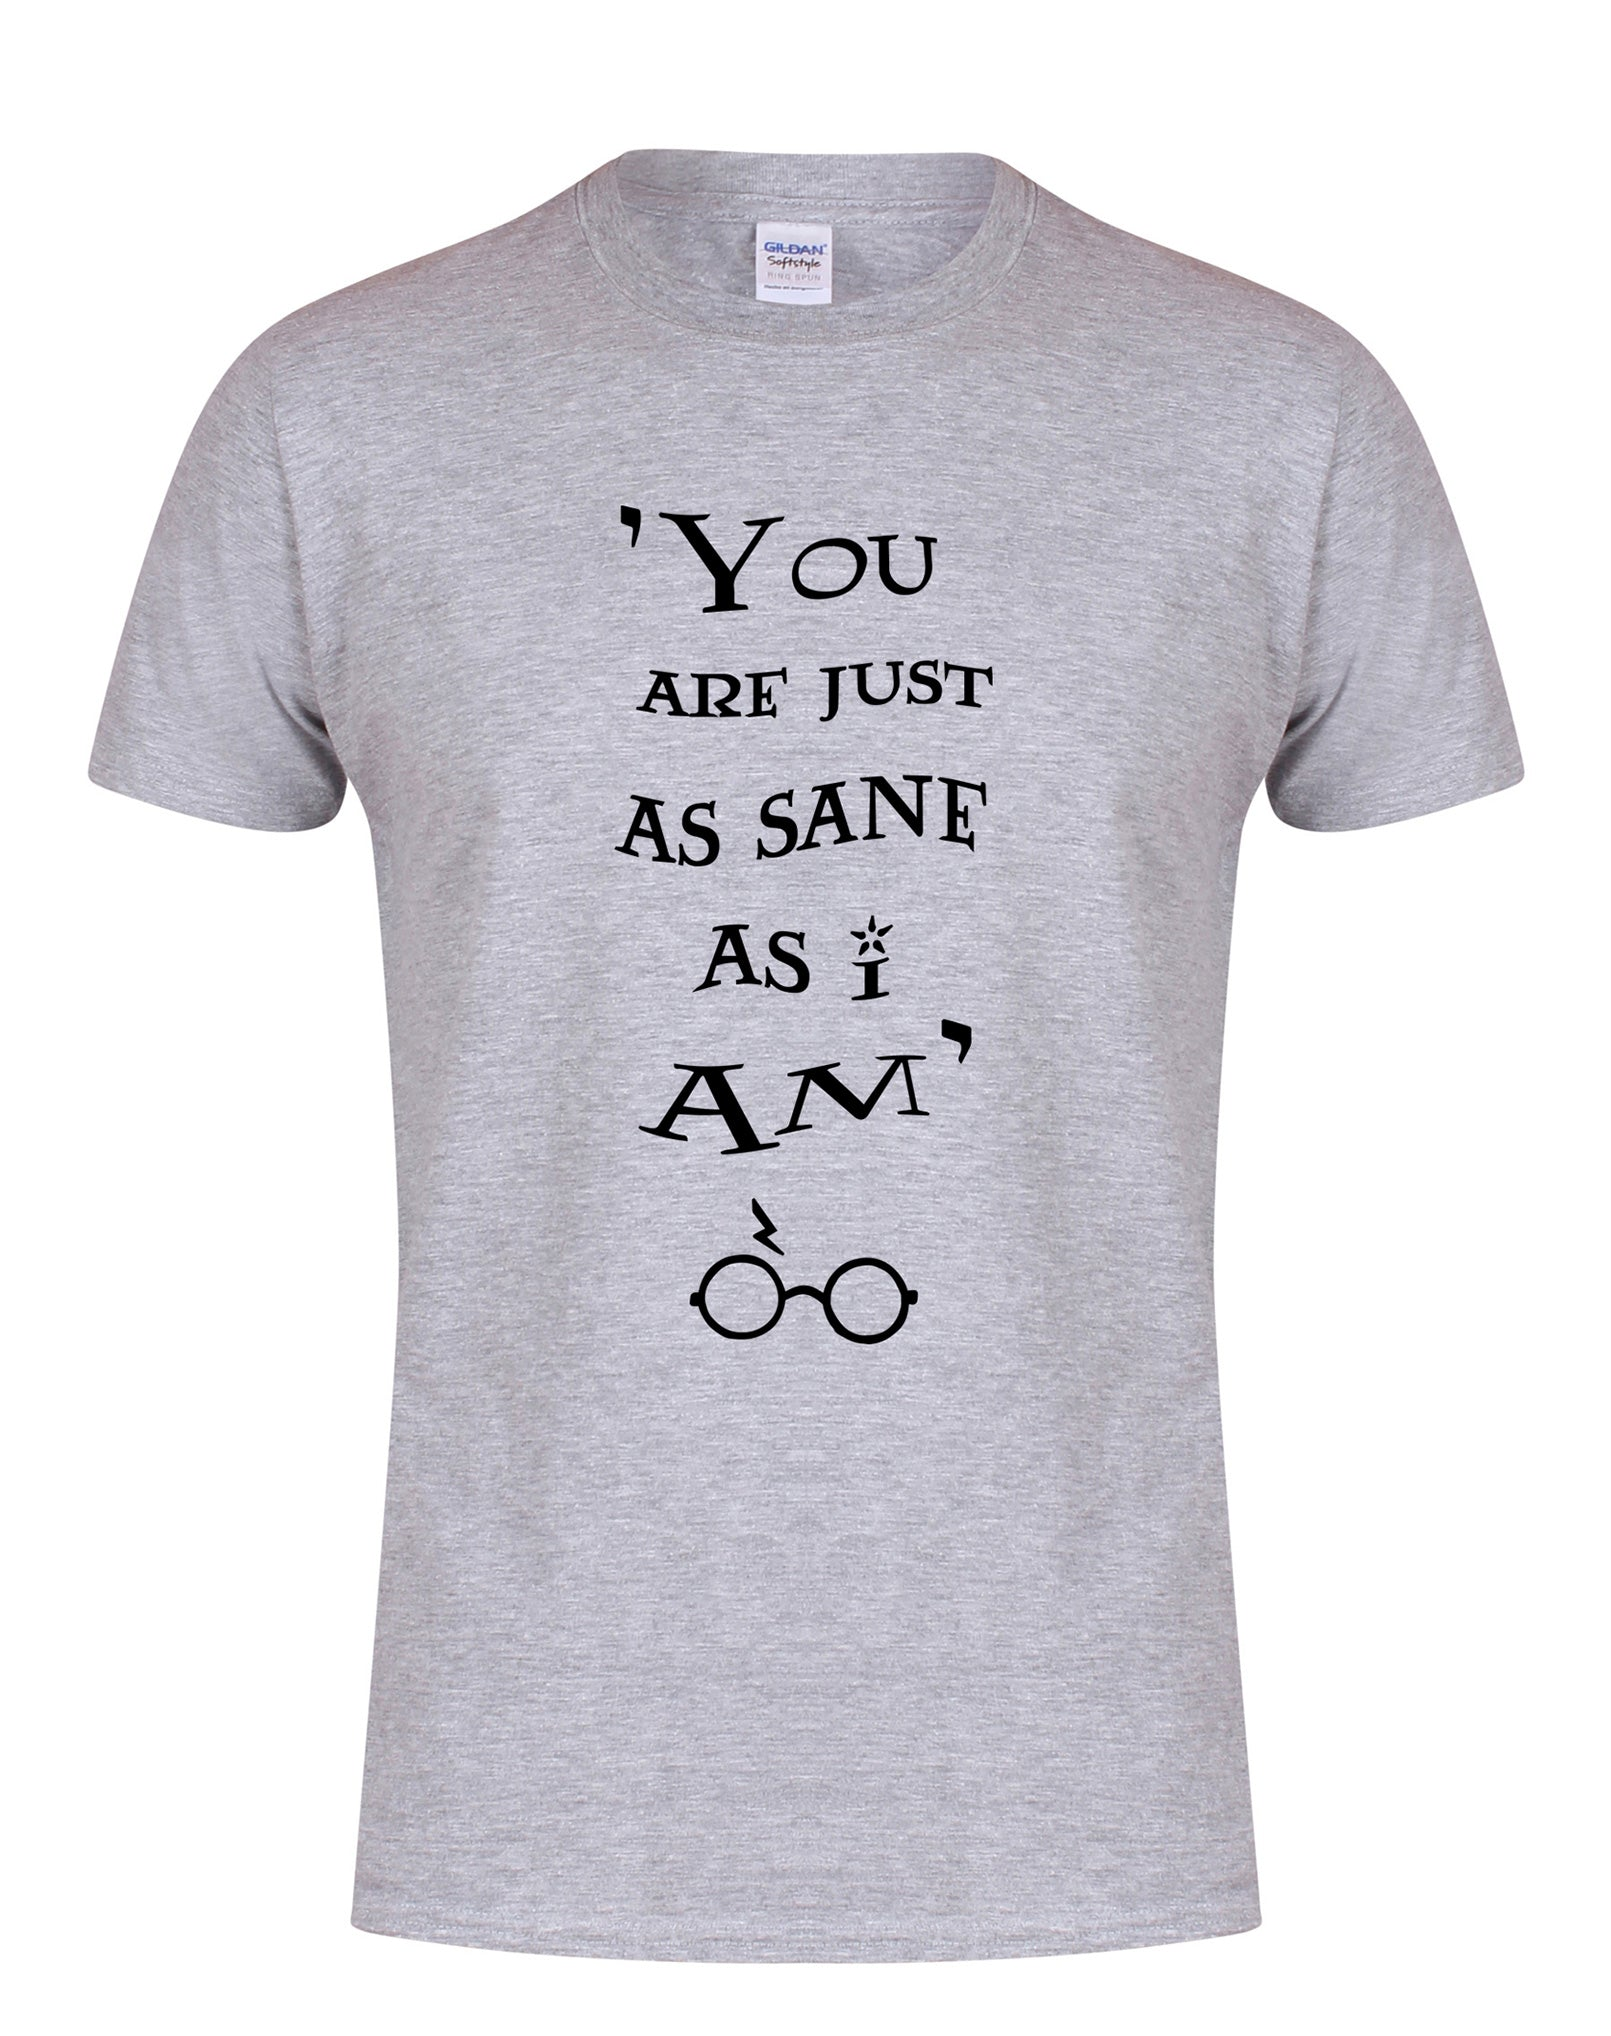 You Are Just As Sane As I Am - Grey - Unisex T-Shirt-Leoras Attic-Kelham Print